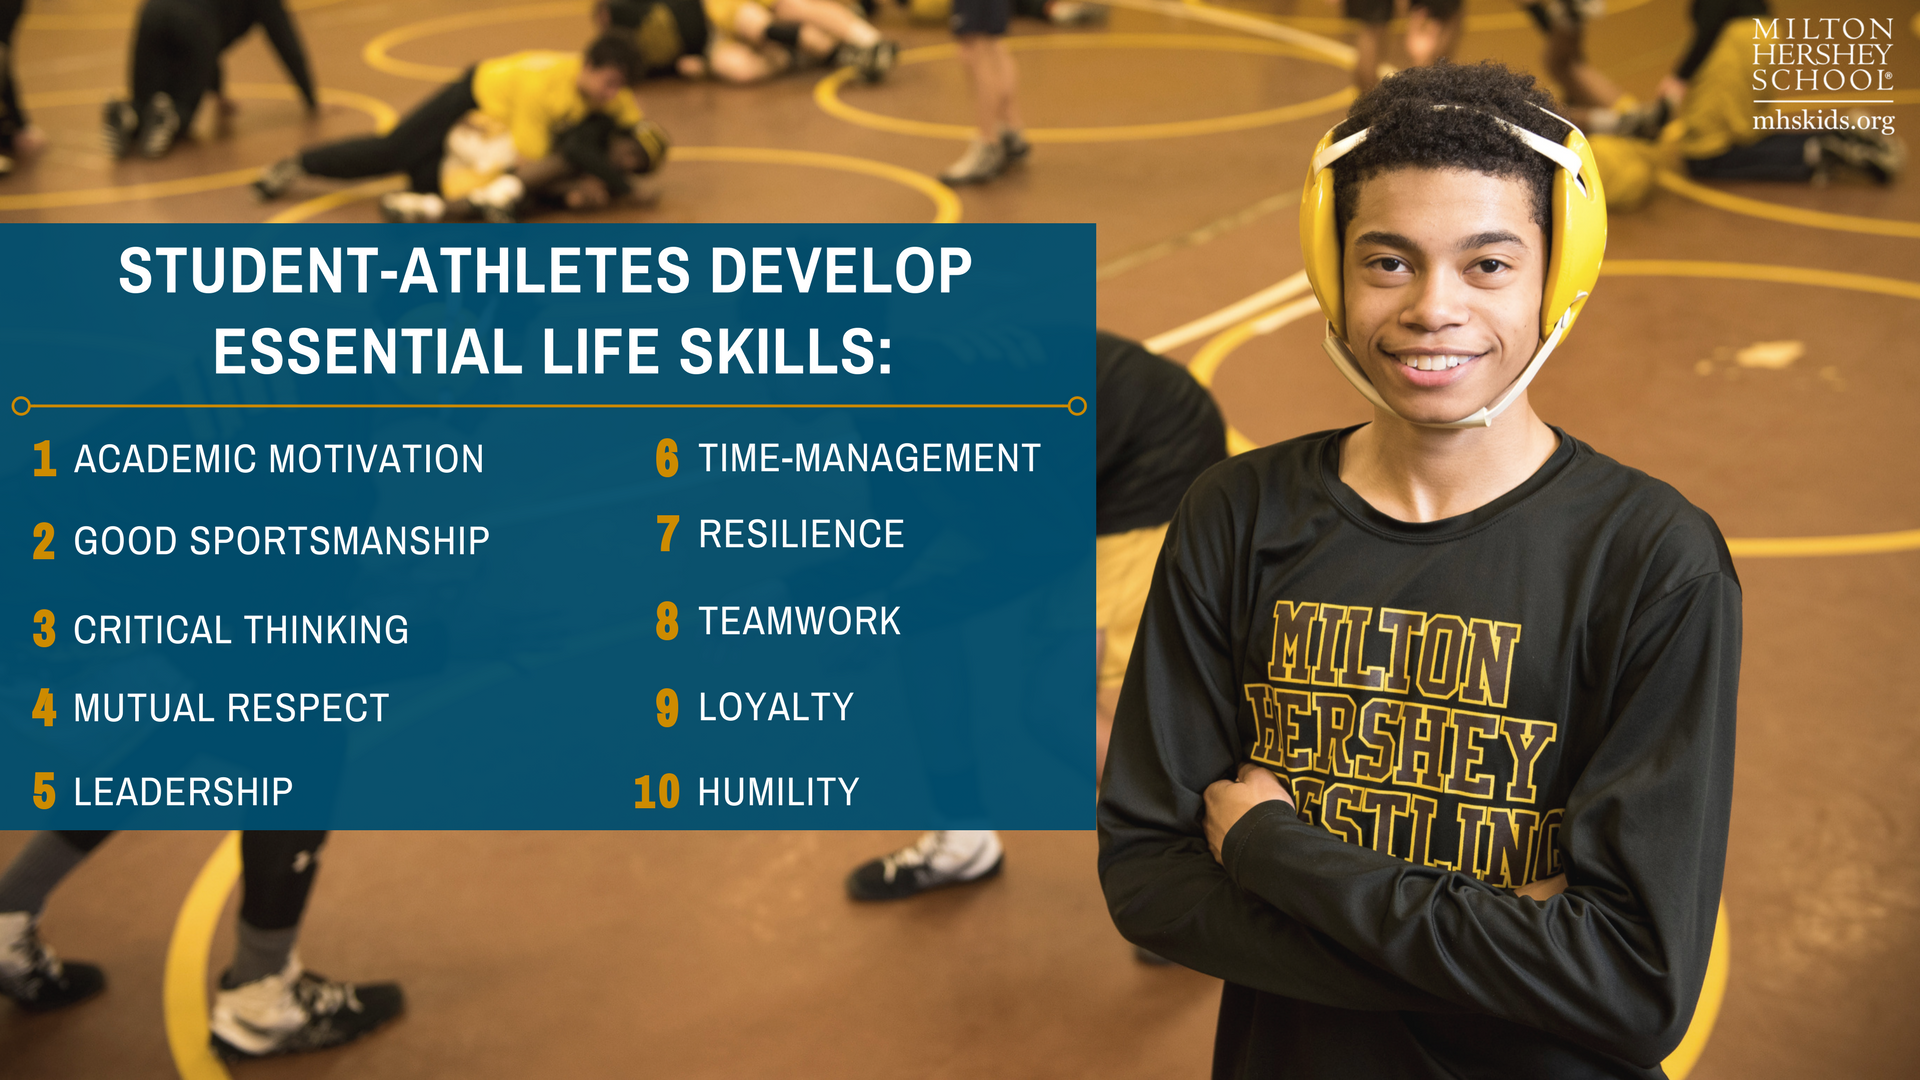 Athletics help prepare students for the 21st century world